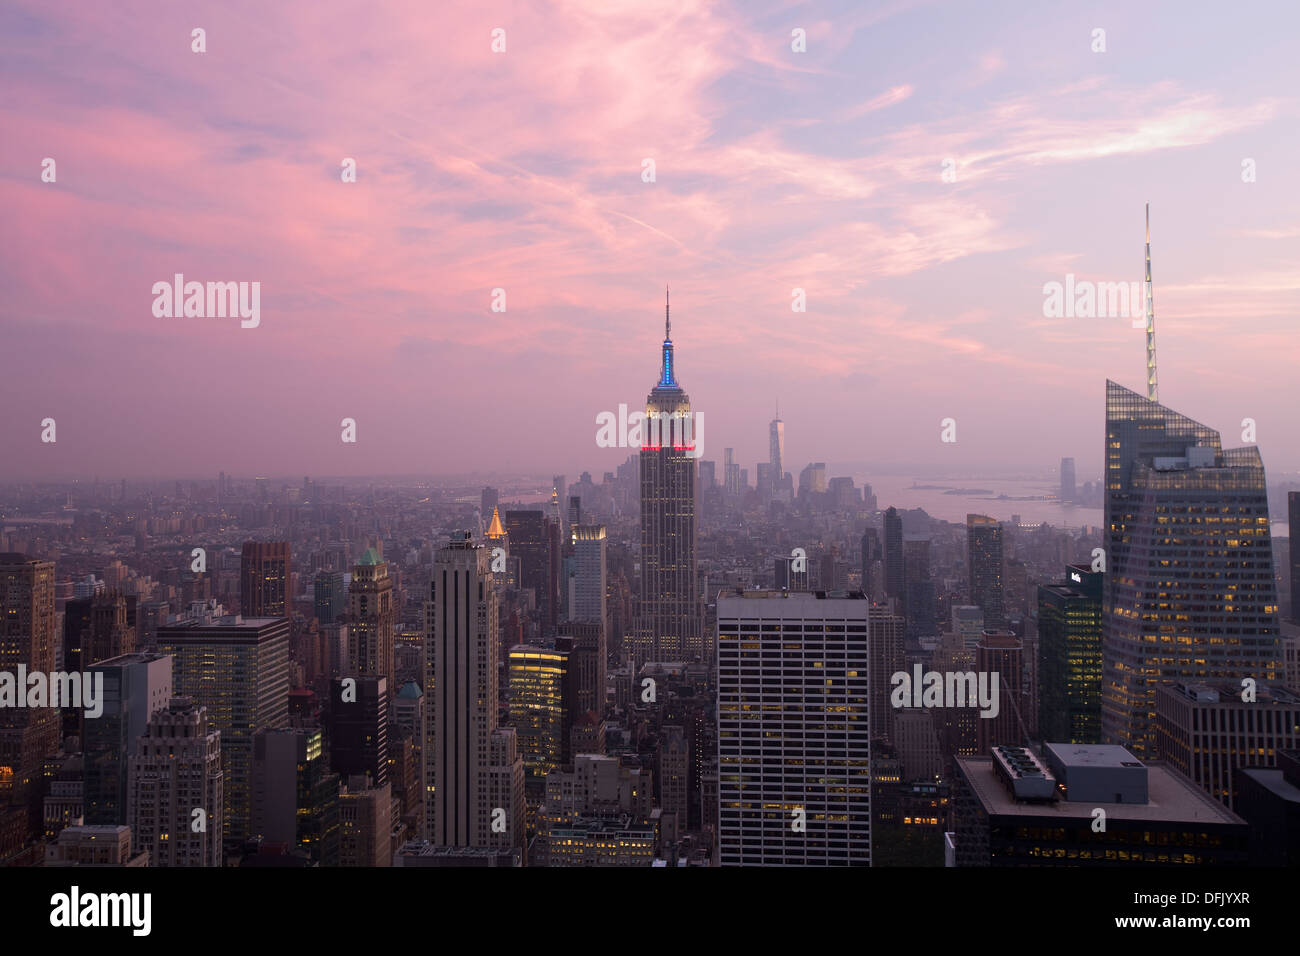 Aerial View of Empire State Building at Night (New York City) - Stock Image